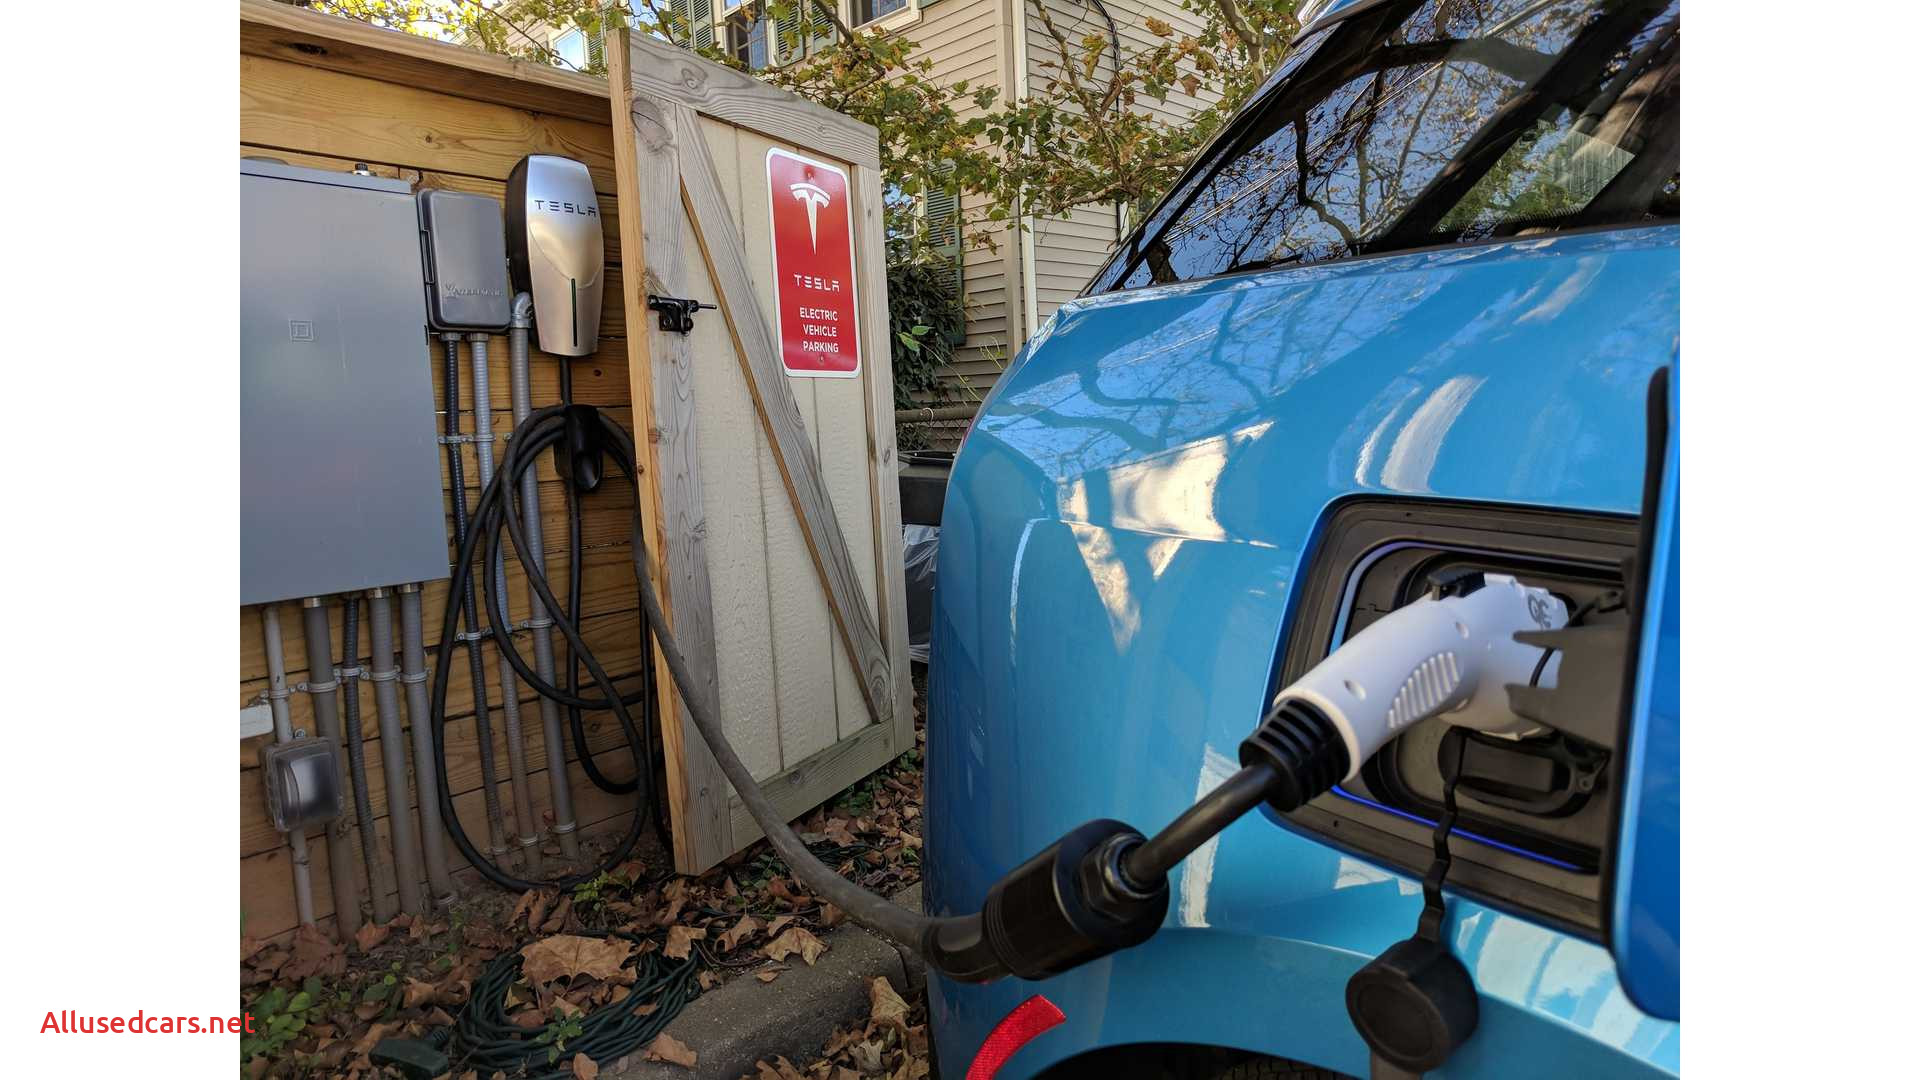 ev charging adapter wars which side are you on